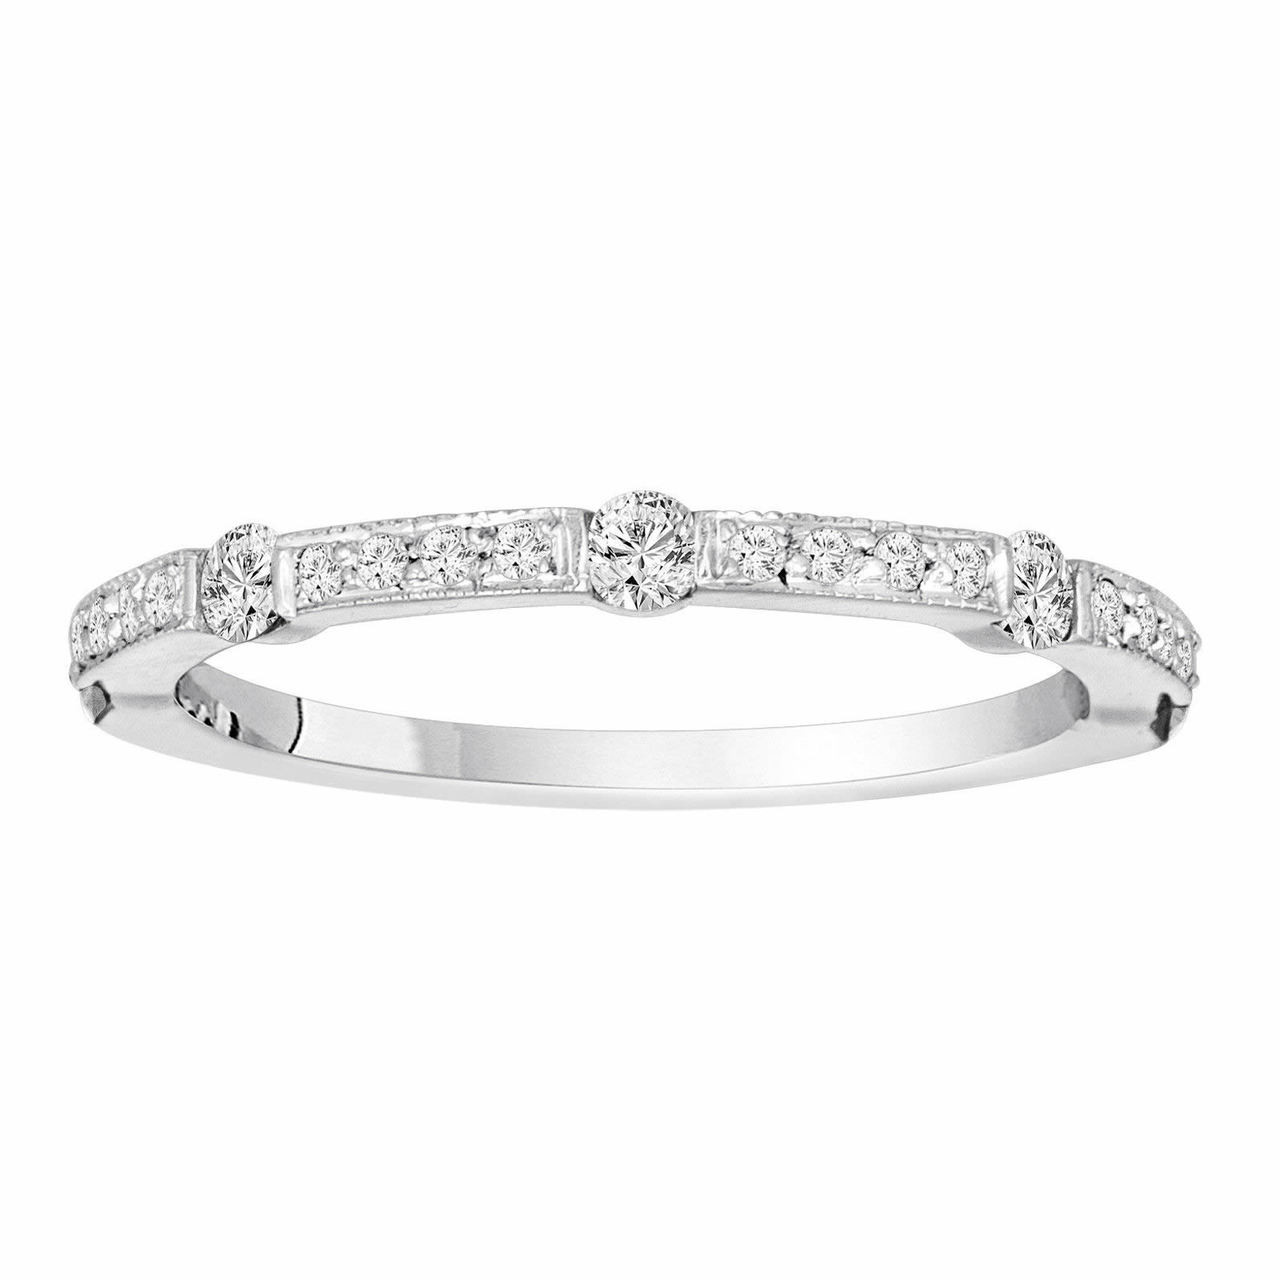 Platinum Diamond Wedding Band 0.40 Carat Half Eternity